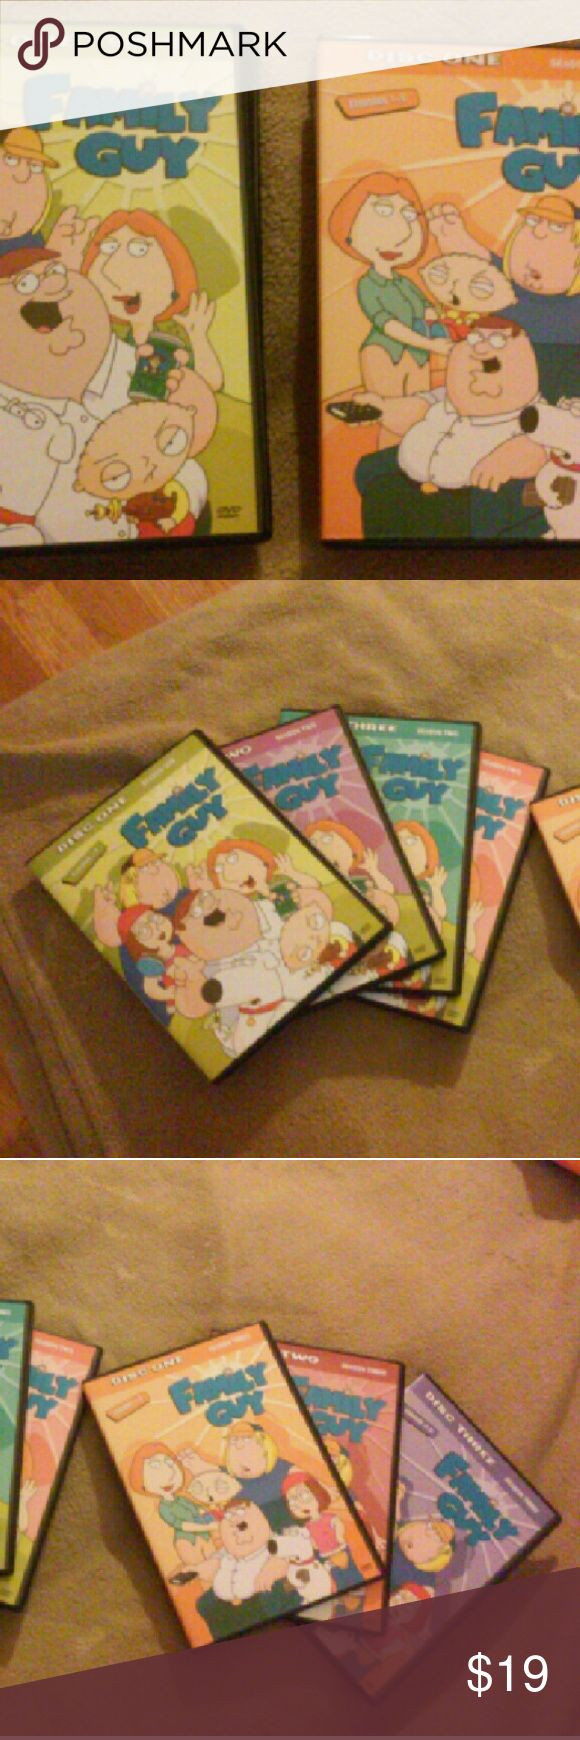 FAMILY GUY Seasons 1-3 DVDs Still in Good condition! FAMILY GUY tv Show on DVD. Seasons 1, 2, & 3. Season 1 doesnt have as many episodes as 2 & 3. The plastic DVD cases are all in great condition. Discs are good..might b a tiny, lil scratch or two. Awesome, hilarious show! Family Guy  Accessories